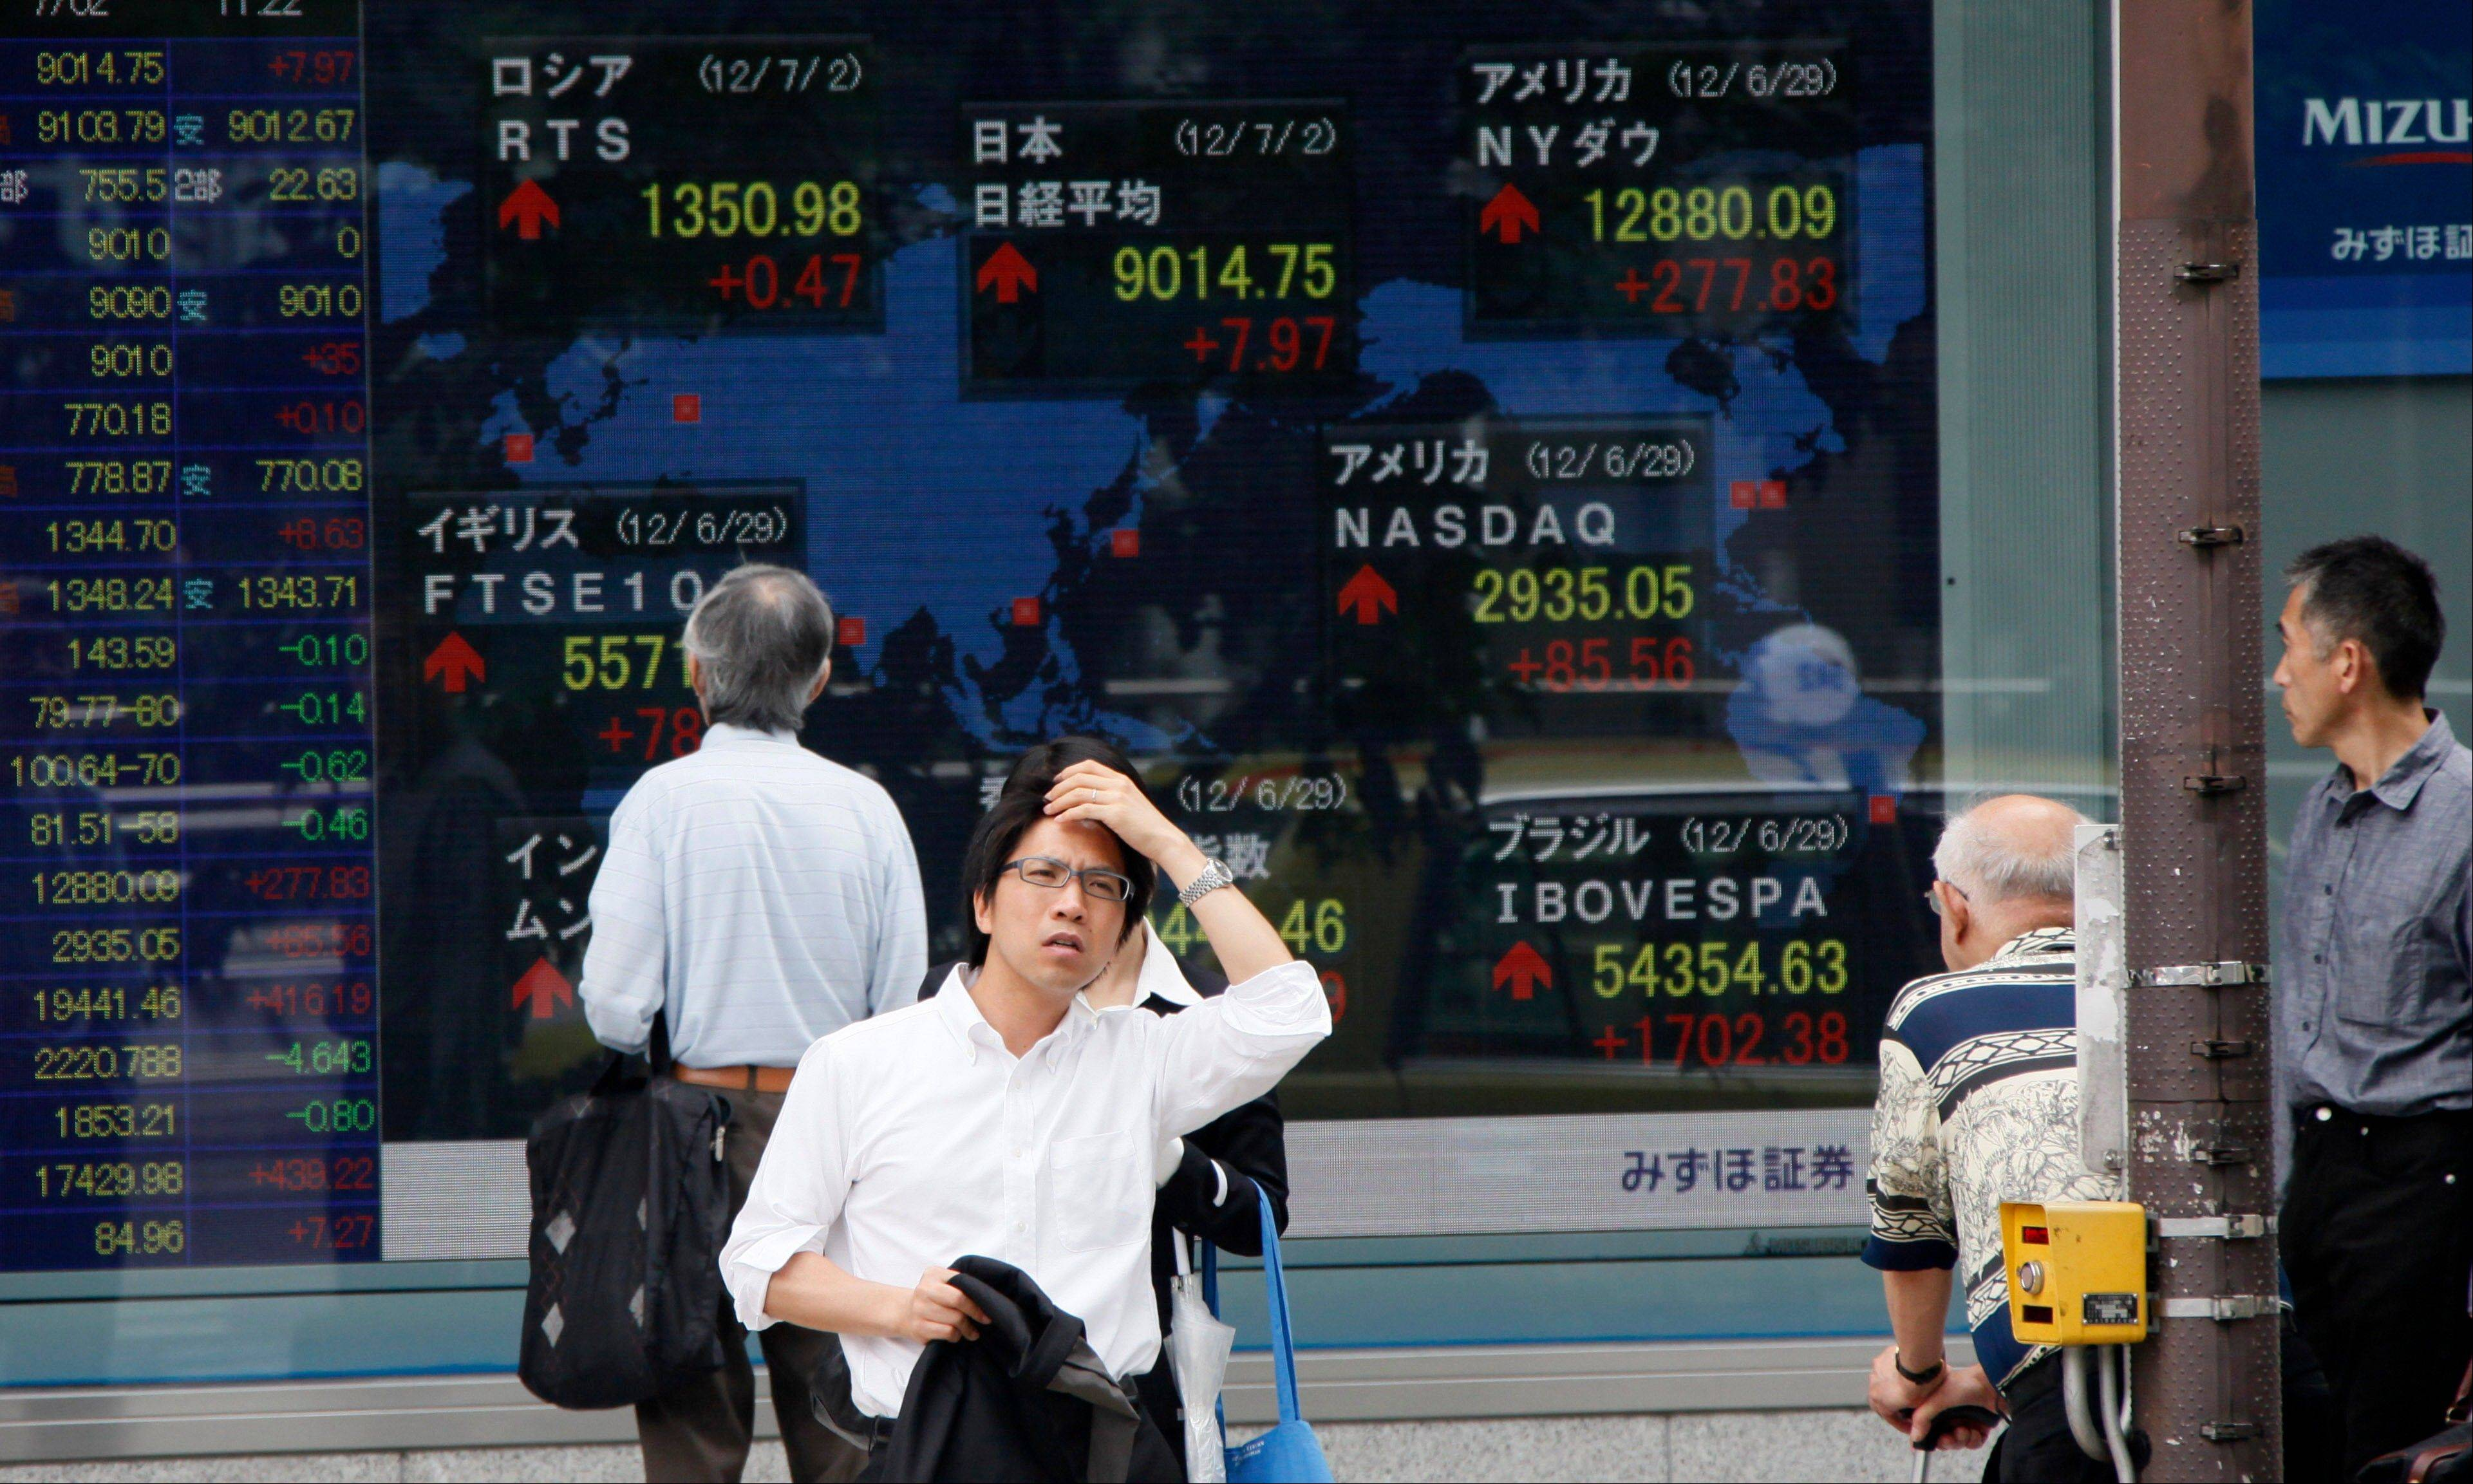 A man waits to cross a road as others watch a digital display of global stock indexes outside a securities firm in Tokyo.